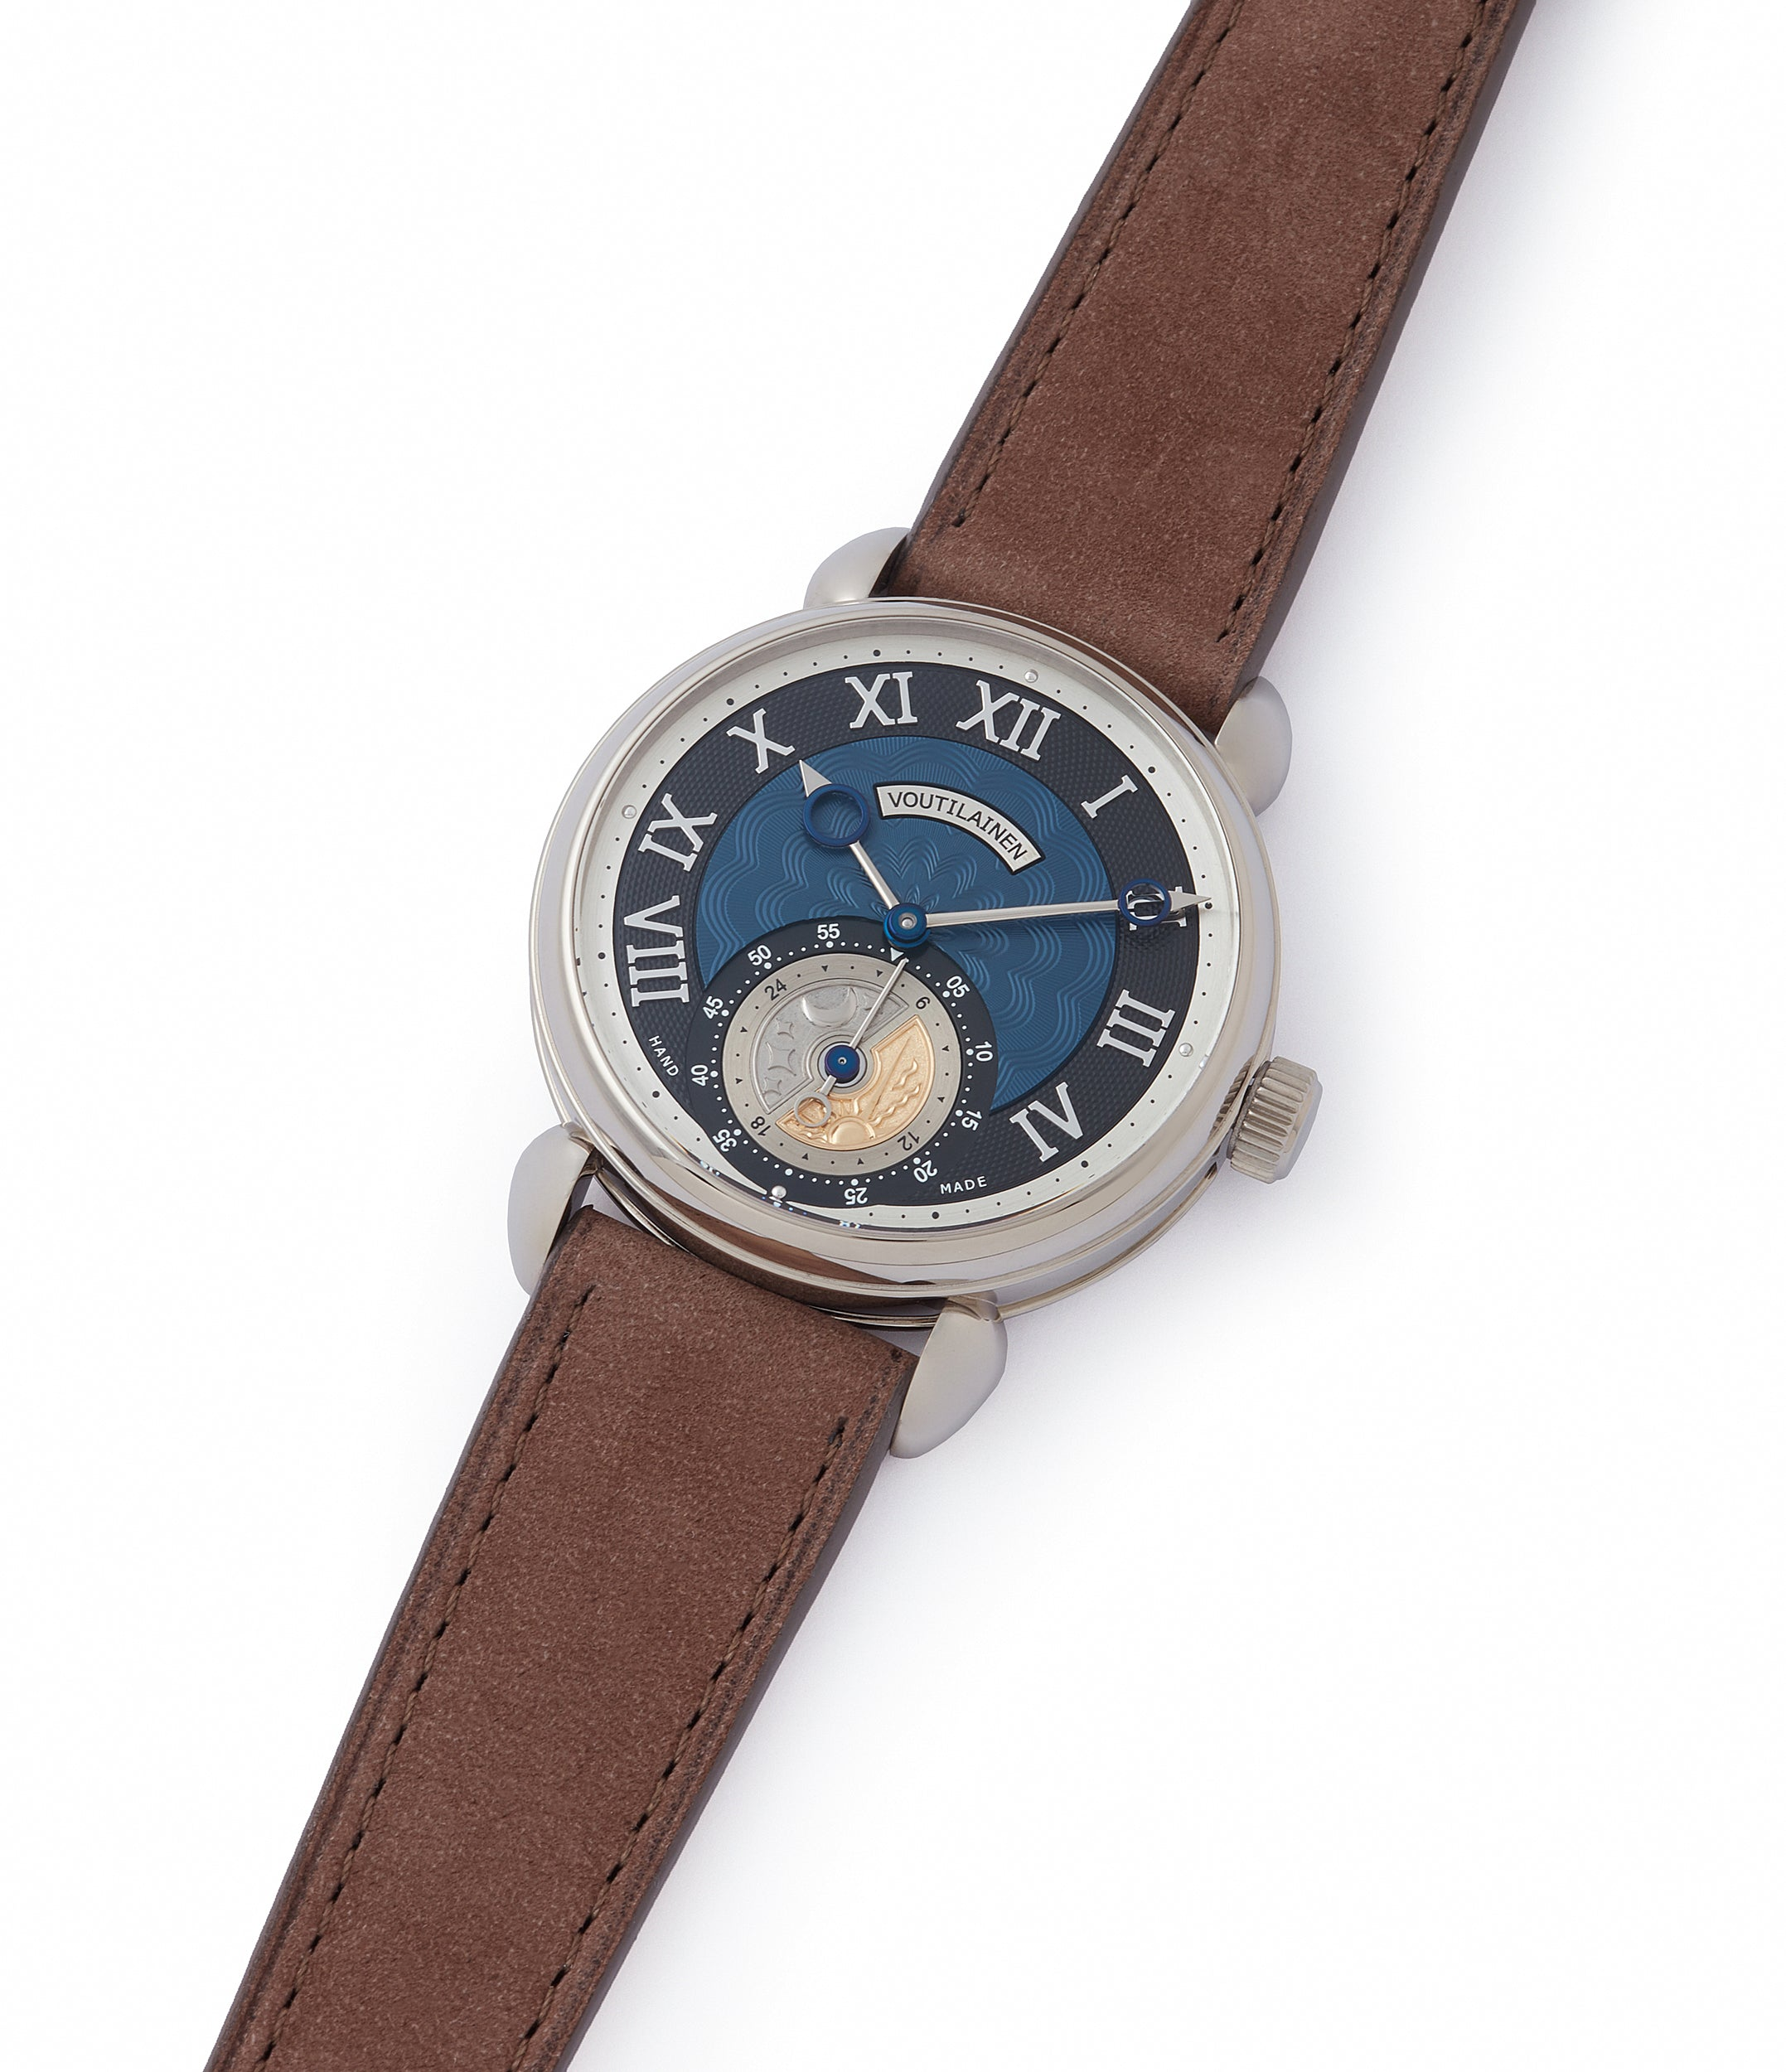 shop Voutilainen GMT-6 white gold blue dial dress watch for sale online at A Collected Man London UK approved re-seller of independent watchmakers